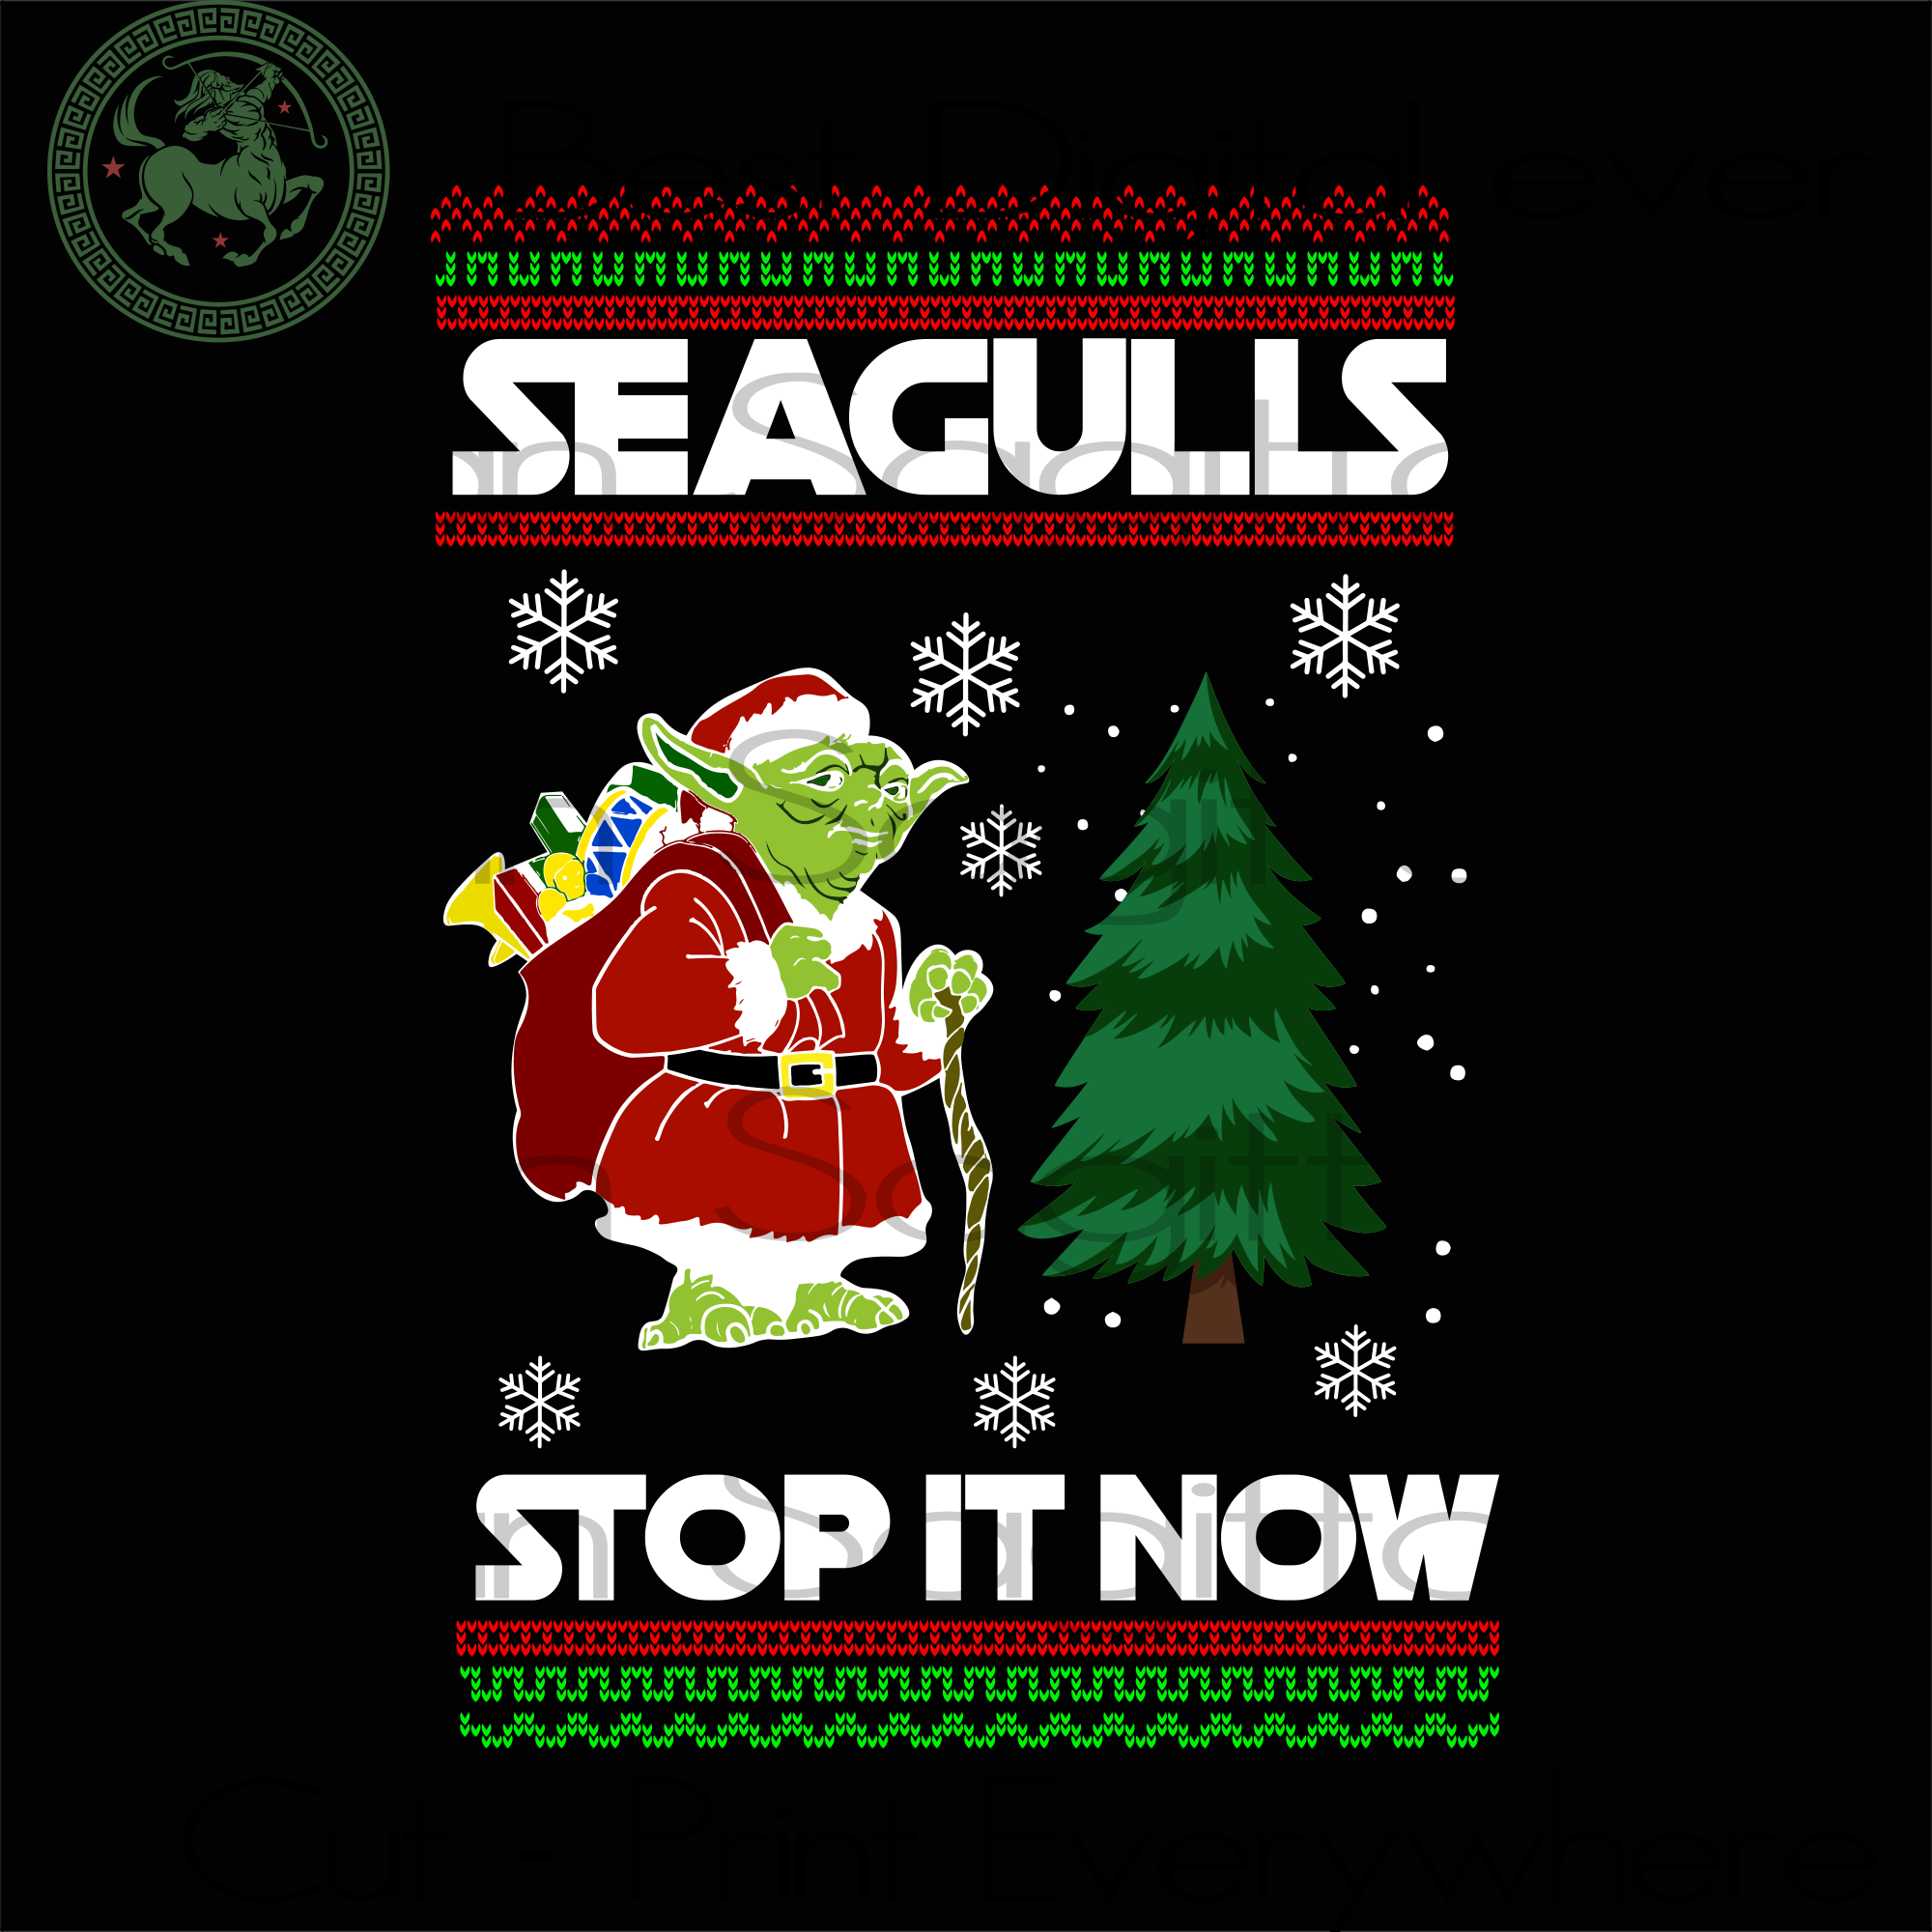 Seagulls Stop It Now, Christmas Svg, Seagulls Shirts, Seagulls Gifts, Christmas Gifts, Merry Christmas, Christmas Holiday, Christmas Party, Funny Christmas, Christmas Tree,  Disney Christmas,